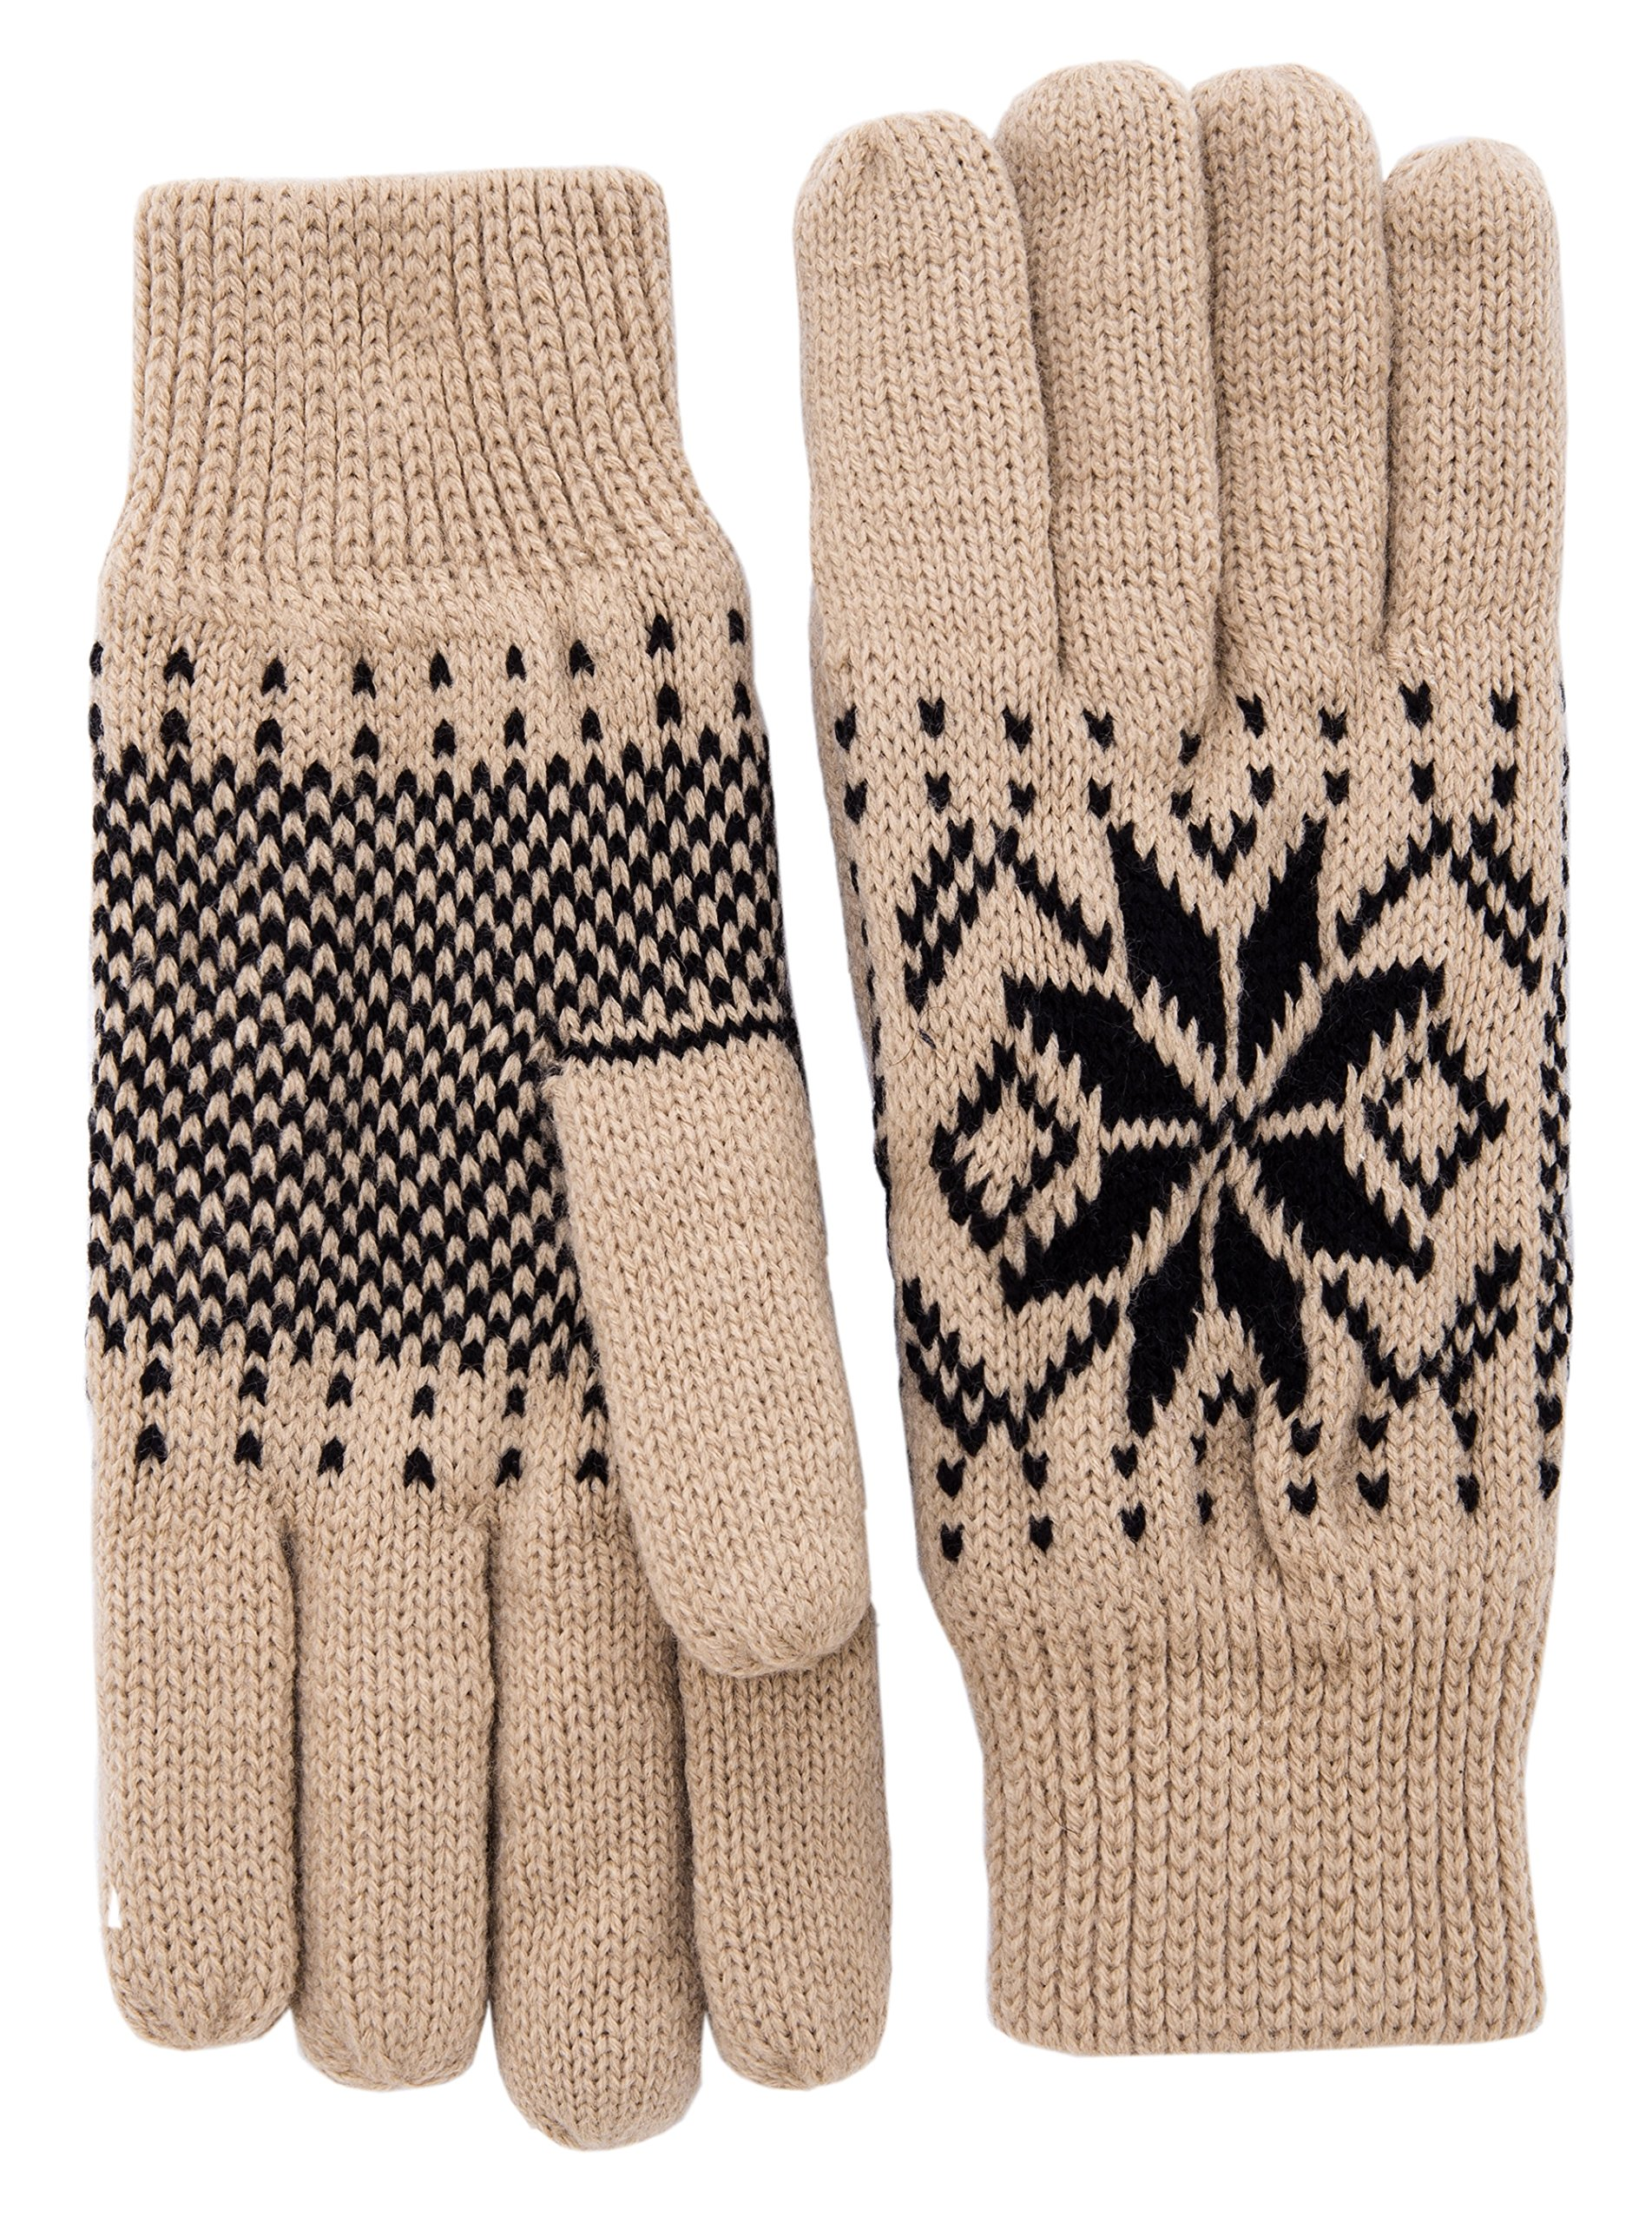 Wantdo Women's Warm 3M Thinsulate Fleece Lining Knit Gloves Thick Snowflake Pattern Winter Mittens One Size